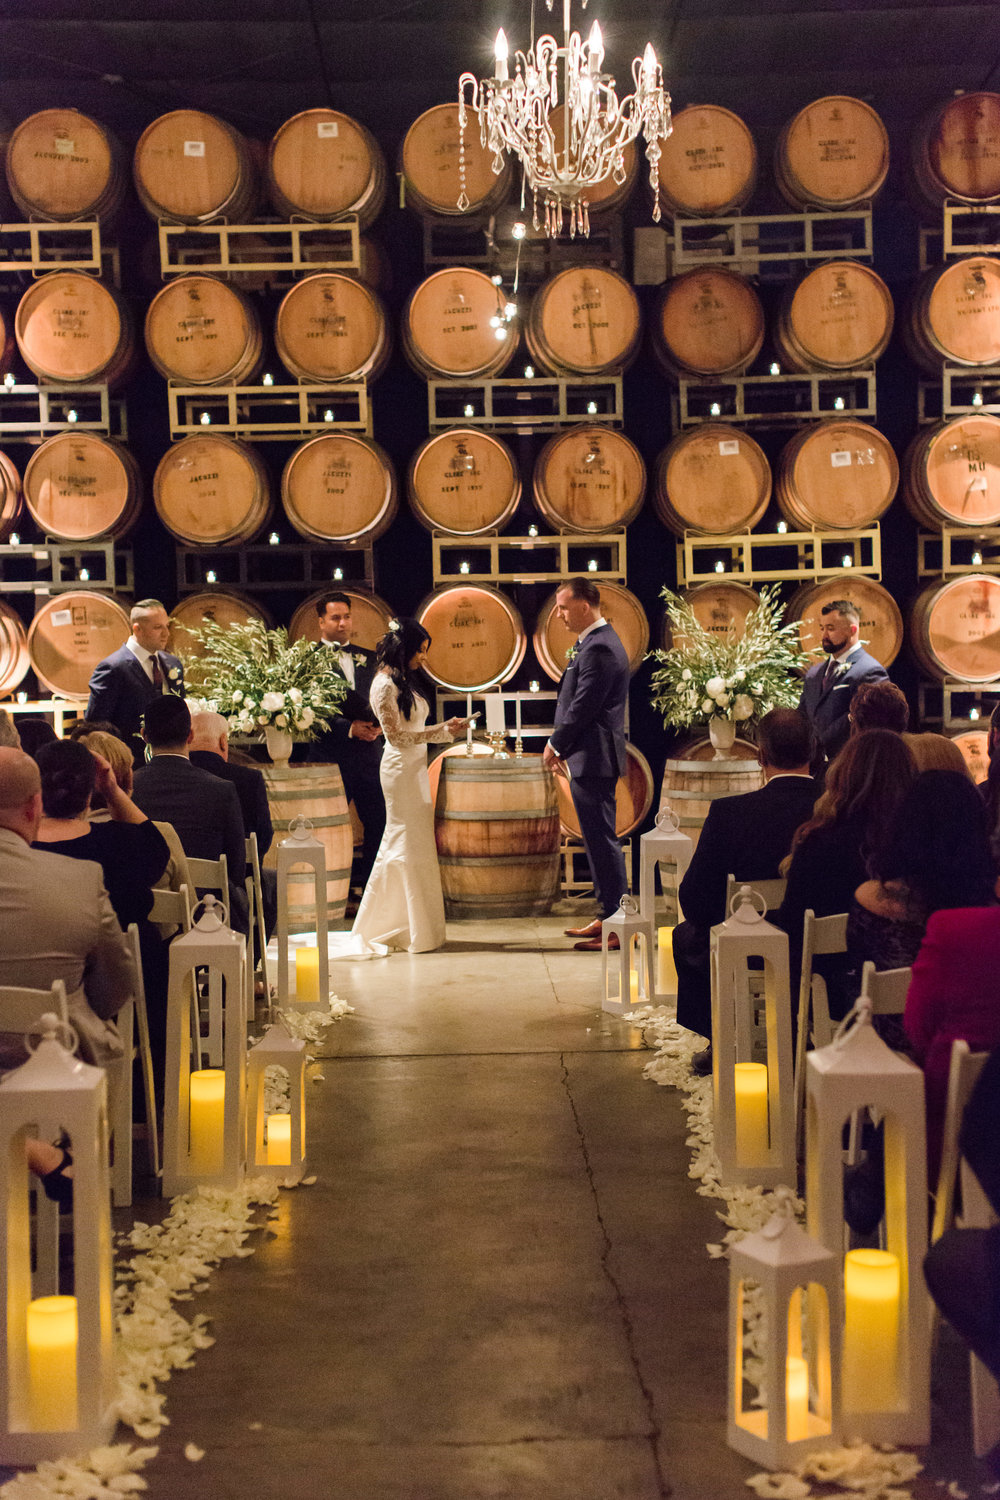 romantic-wedding-at-cline-winery-in-sonoma-california-106.jpg